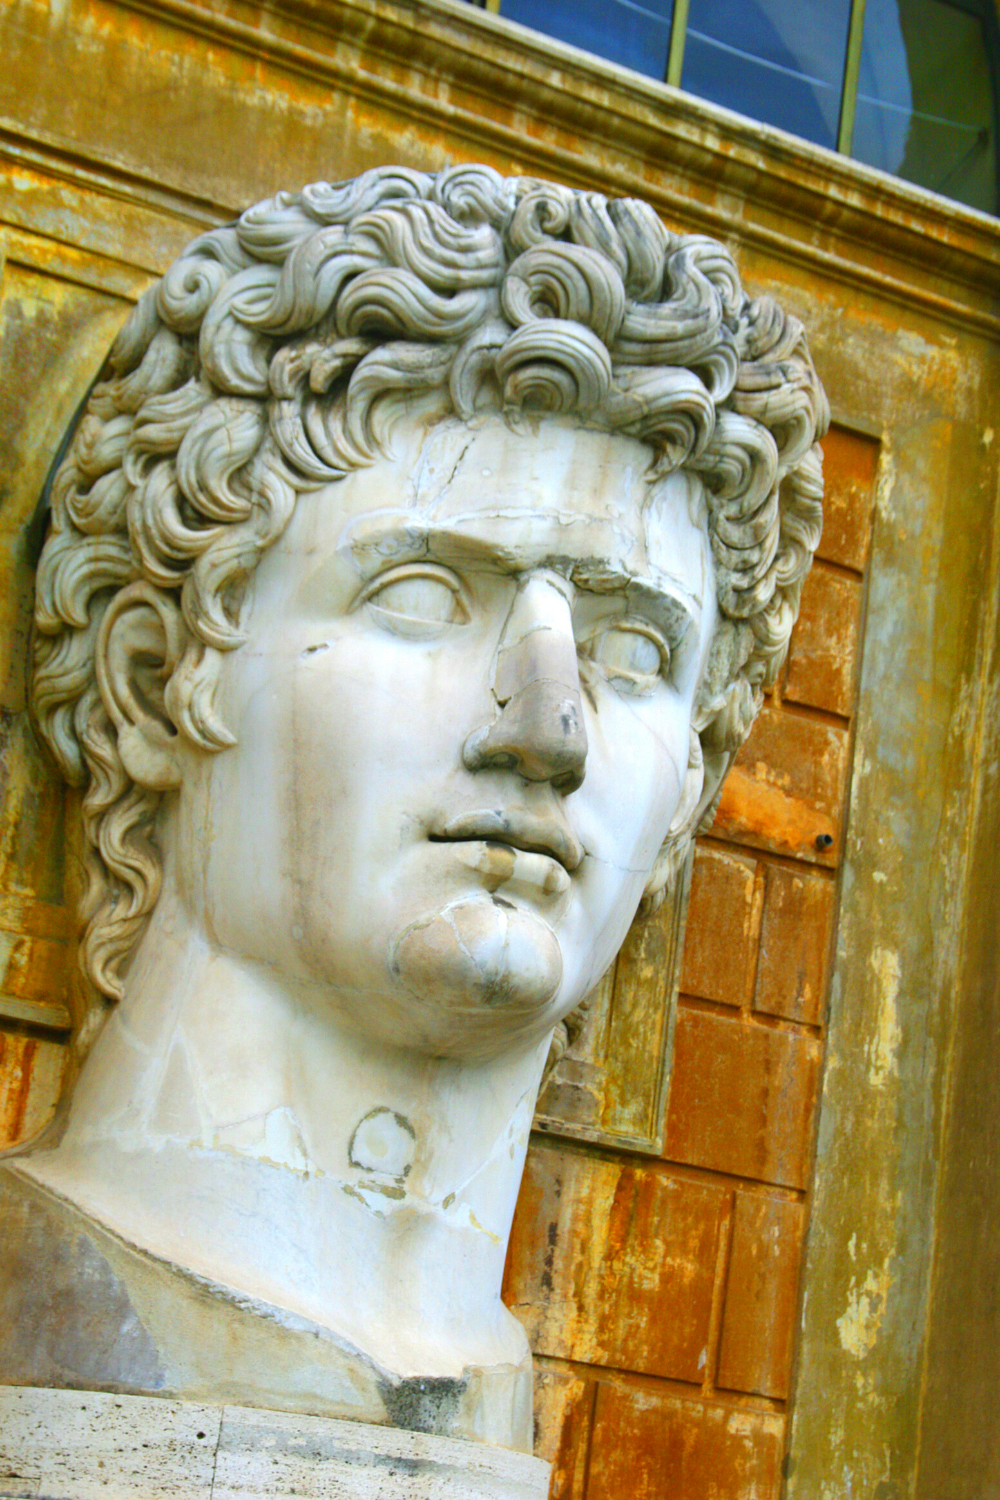 marble bust of Caesar in the Vatican Museum gardens